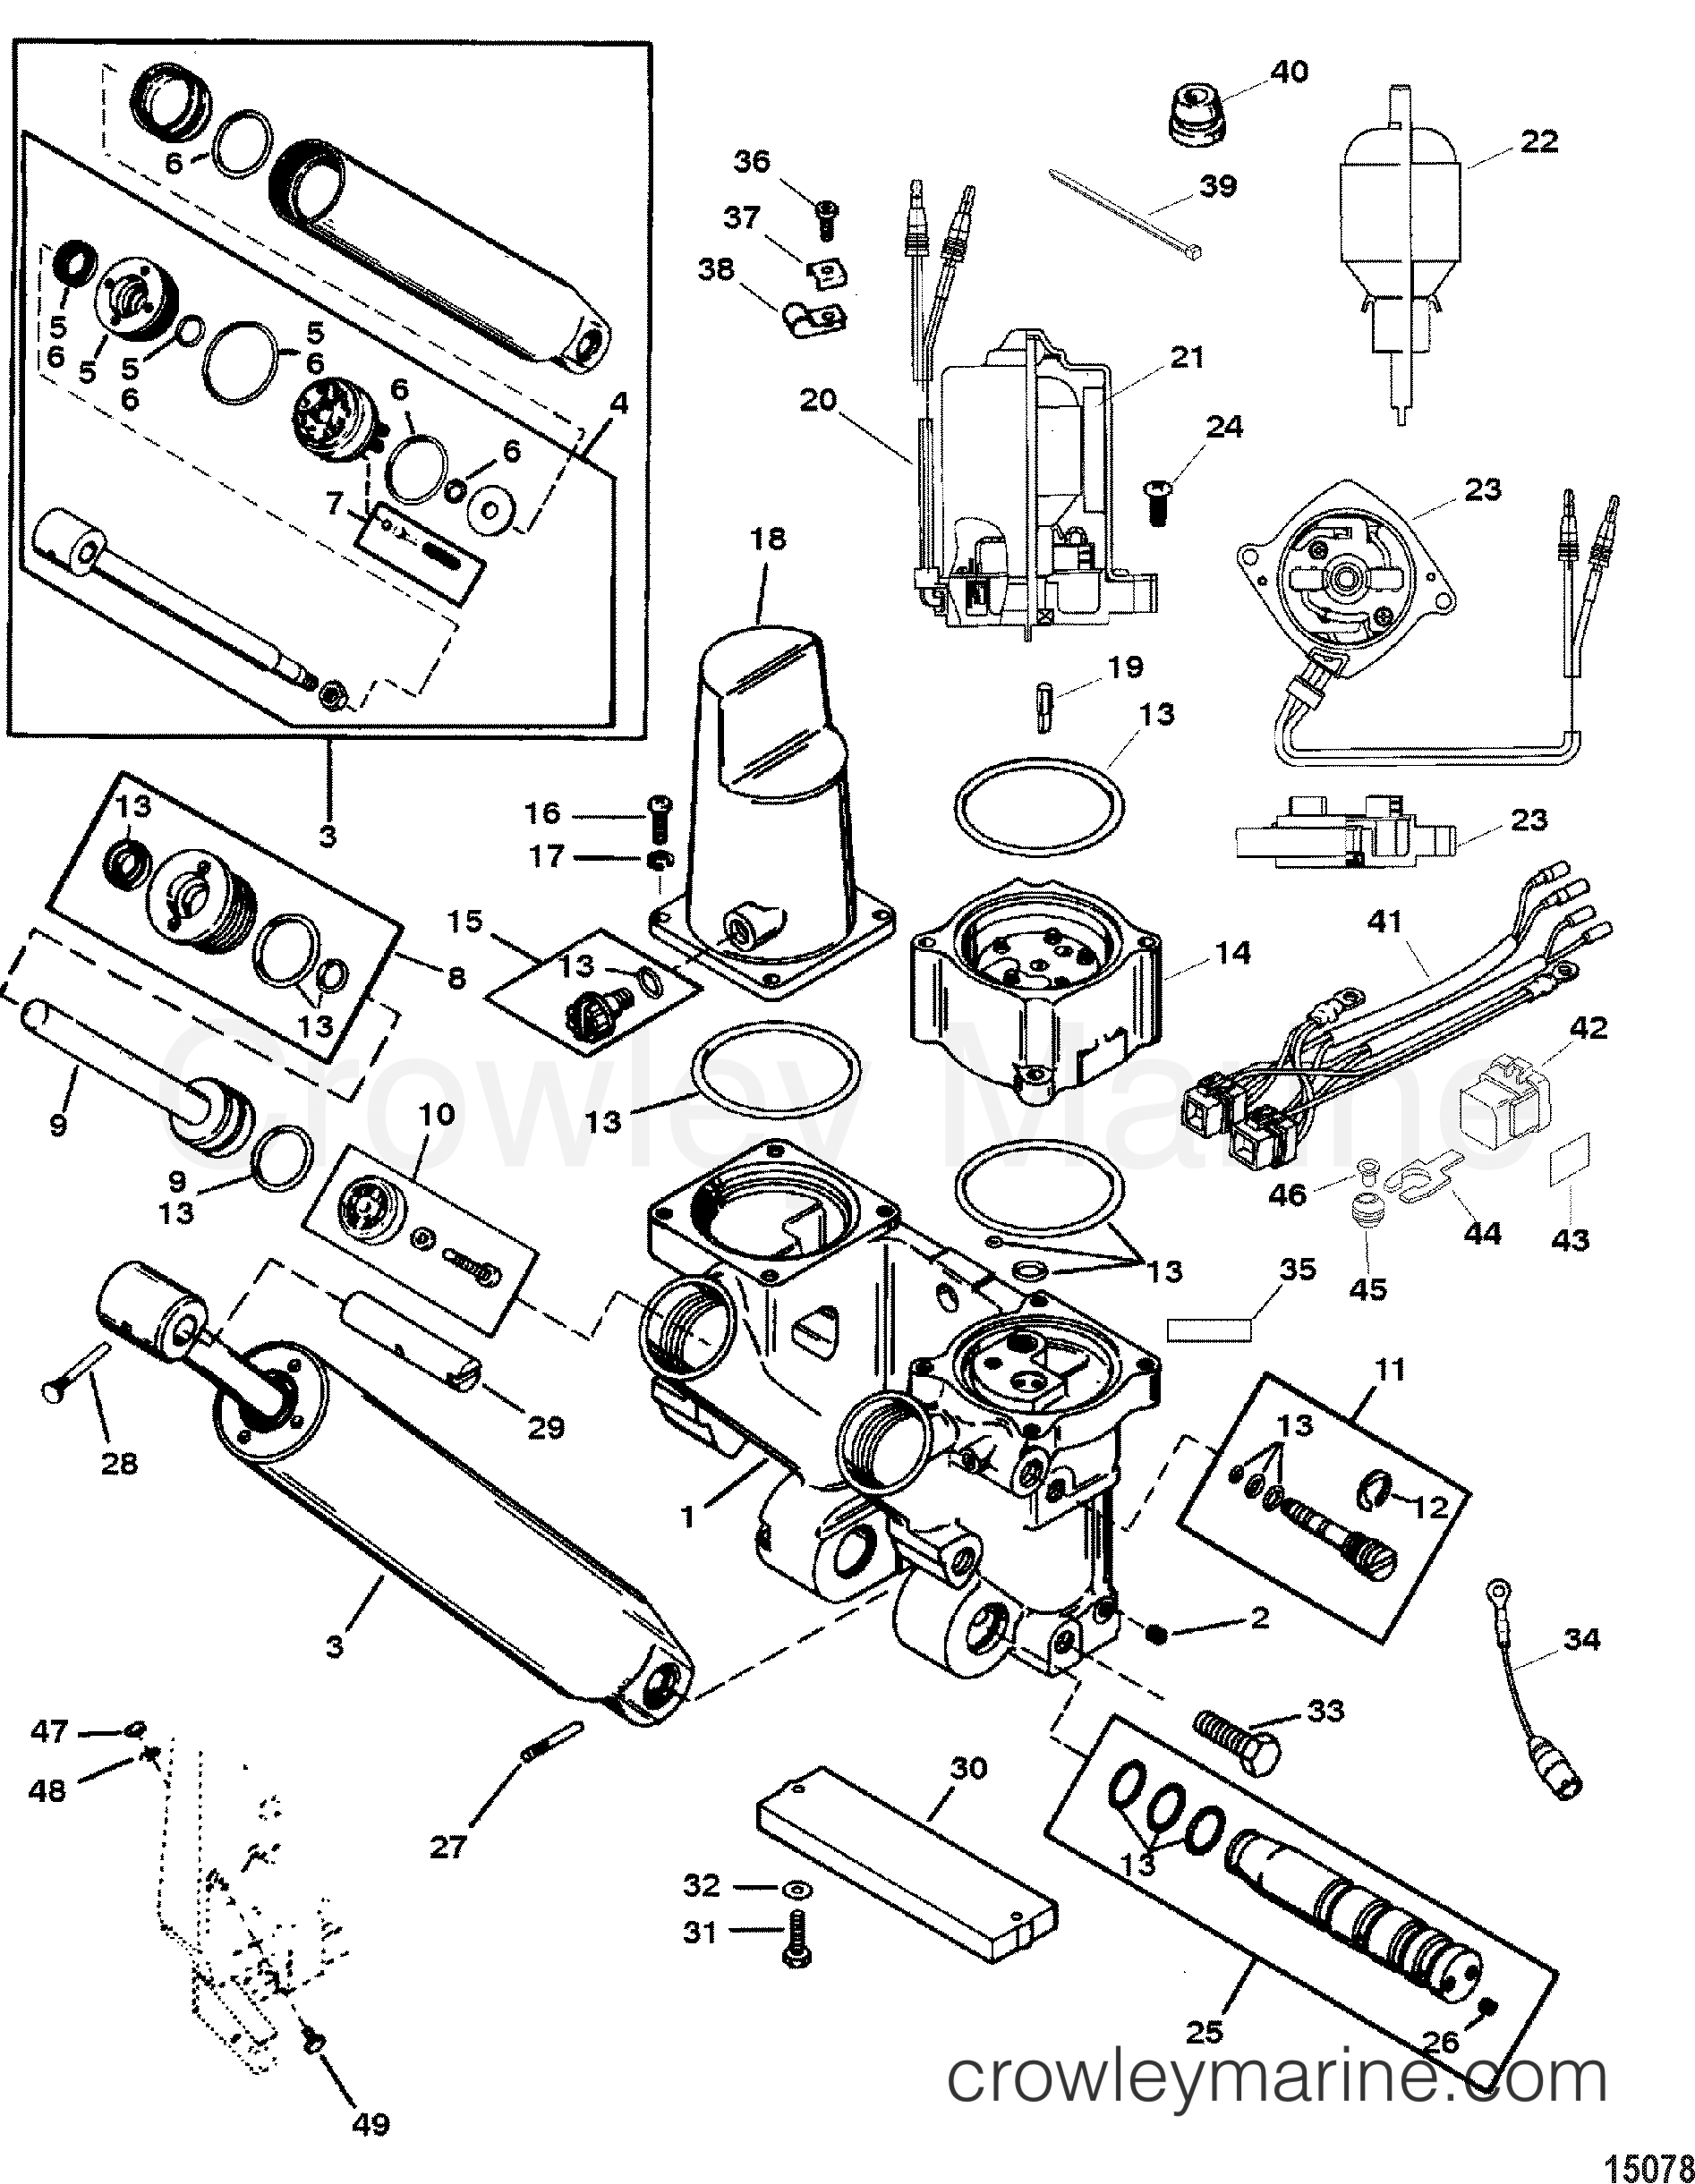 POWER TRIM AND TILT KIT(826729A4) - Various Years Rigging ...